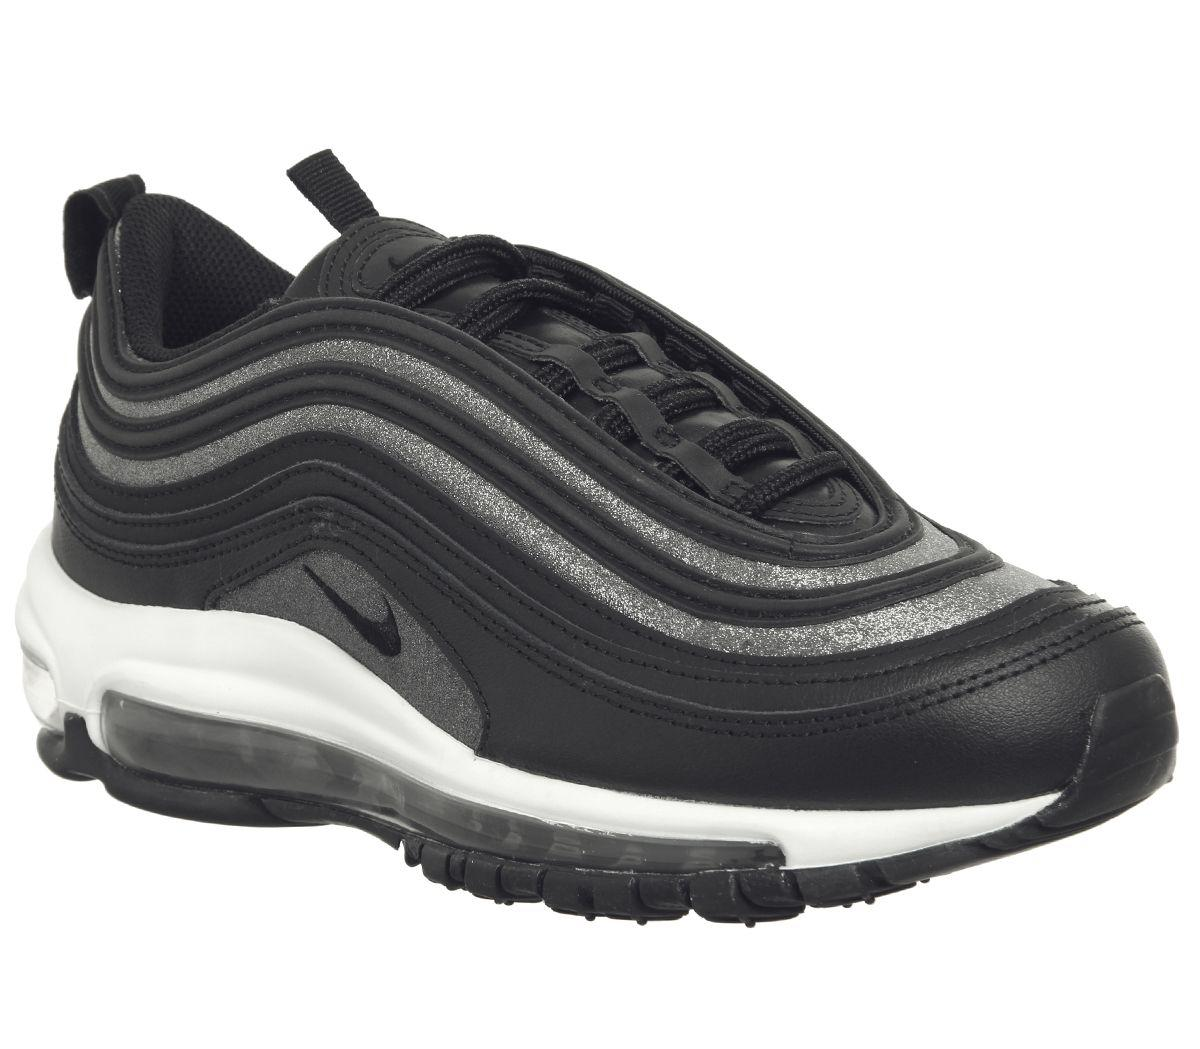 Nike Rubber Air Max 97 Trainers in